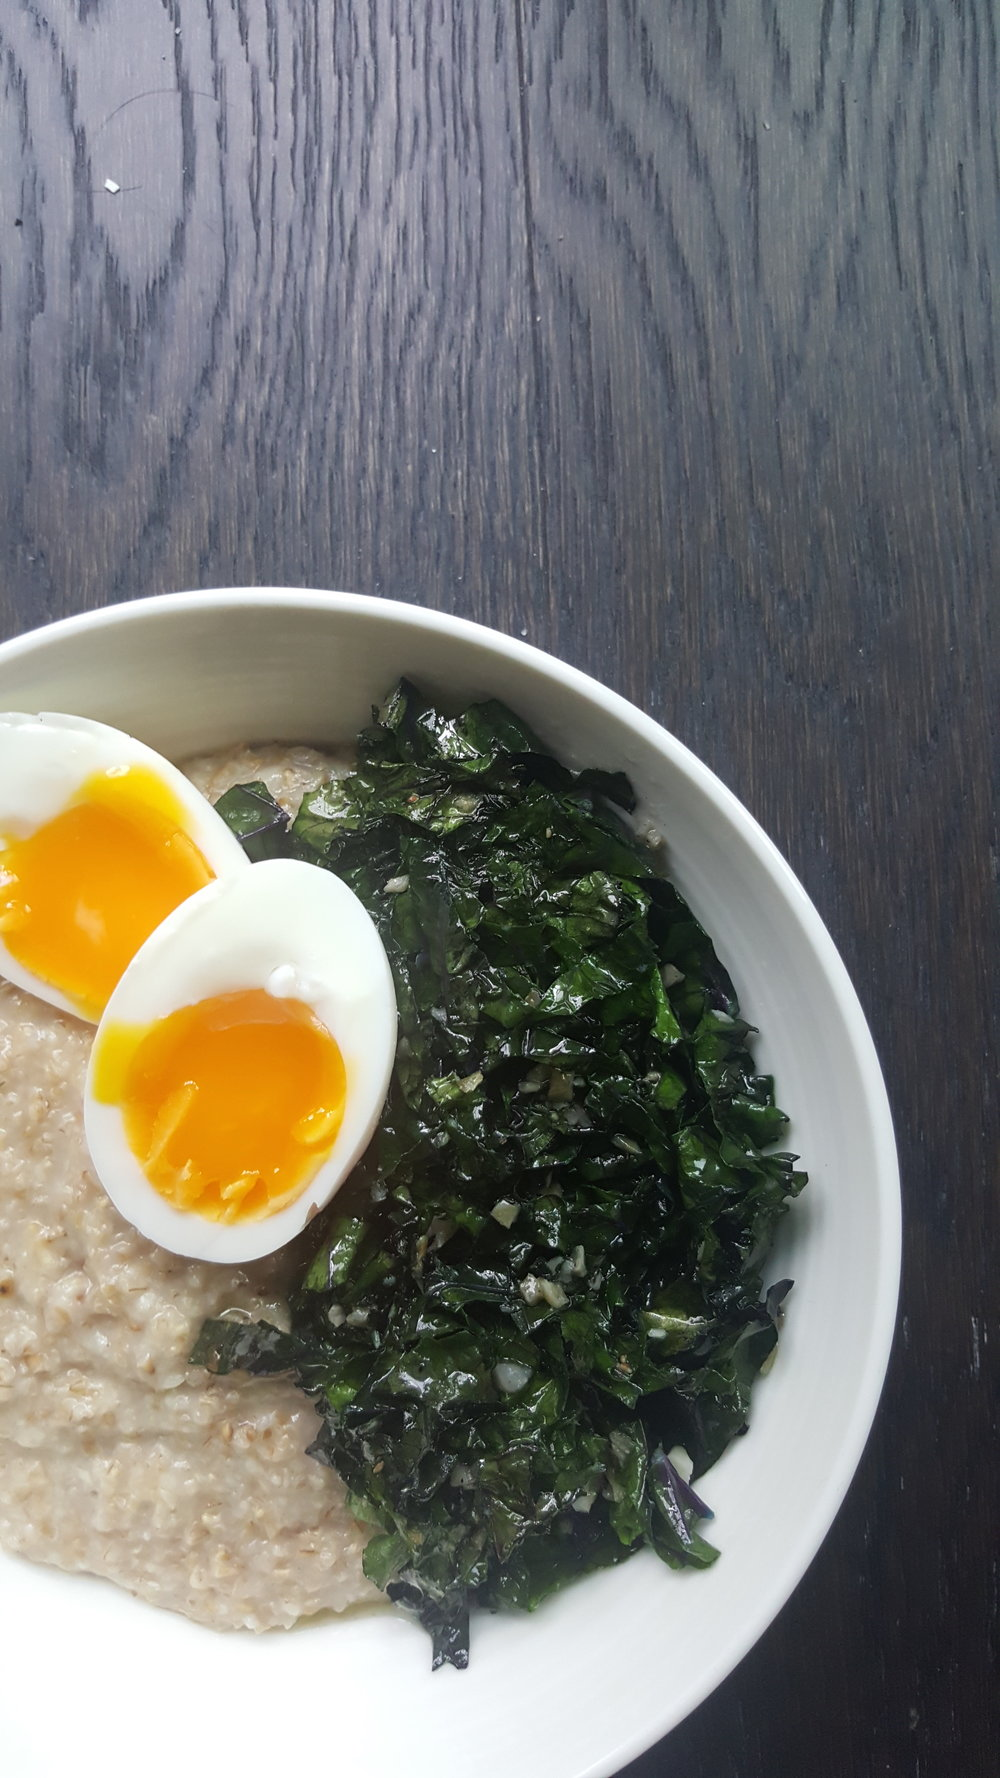 - ingredients-1/2 cup oats-1 cup water-1 tbsp sharp cheddar cheese-organic if possible (parmesan also works well)-1 clove garlic, minced-2 tsp butter- organic if possible; or 2 tsp coconut oil-2 cup chopped kale- about 2-3 large leaves-1 egg (I went with medium boiled)-pinch of s&p make i-begin by making the egg: add the egg to a small saucepan and cover with water, bring the water to a boil. As soon as the water starts to boil, set your timer for 5 minutes. After 5 minutes has passed, cover the egg in cold water and set aside. Once cool enough to handle, you can peel your egg and set it aside until it's time to eat. Note: this is how I like to prepare my eggs, 5 minutes is the perfect amount of time to cook the whites but leave the yolk still runny. Feel free to cook your egg any way that you prefer.-to prepare the oatmeal: bring water to boil in a small sauce pan, add the oats and give it a good stir. Turn the heat down to low, until the oatmeal is just slightly bubbling. Allow the oatmeal to cook, stirring every few minutes. Continue to watch it and remove from the heat when the oats are cooked and still slightly runny.-while the oatmeal is cooking, pre-heat a skillet on medium heat, add the butter or coconut oil to melt. Prep the kale by removing the thick inner ribbing. Lay the remaining leaves on top of each other and slice into thin ribbons. Once the pan is warm, add the garlic and cook until fragrant. Add the chopped kale and saute until bright green. Sprinkle with salt and pepper and remove from the heat.-once the oatmeal is cooked, remove from the heat and season with a pinch of salt and pepper. Add the cheese and stir until well combined.-pour the oatmeal into a bowl and top with the kale. Slice the egg in half and add it to the bowl. Serve immediately and enjoy!